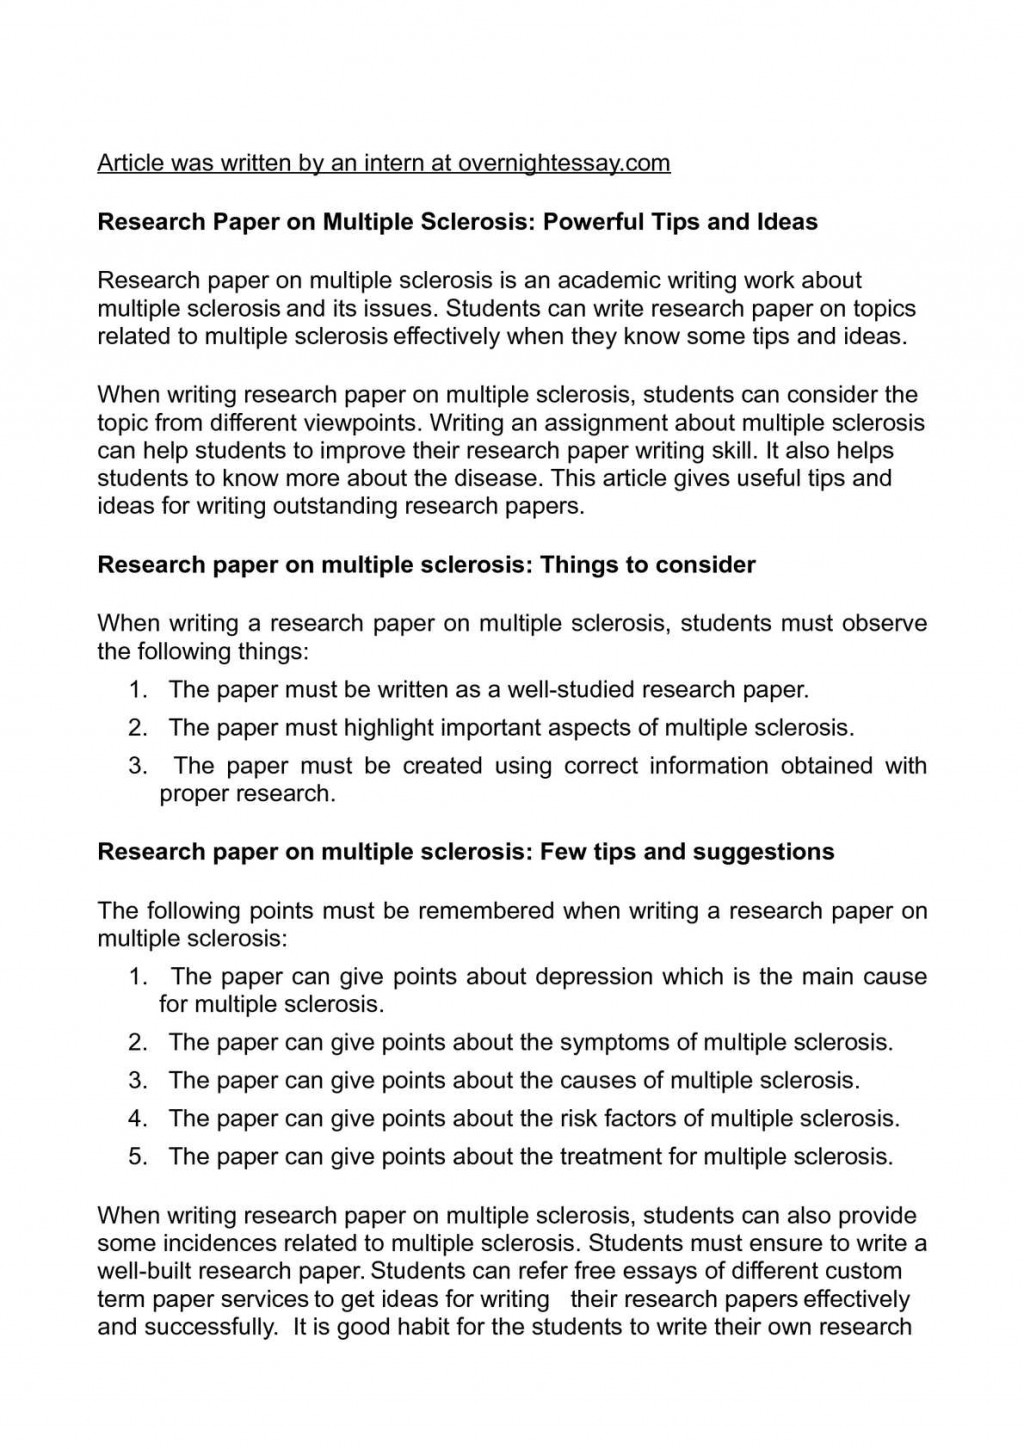 015 Research Paper How To Write Breathtaking Objectives An Abstract For English A Conclusion Apa Large